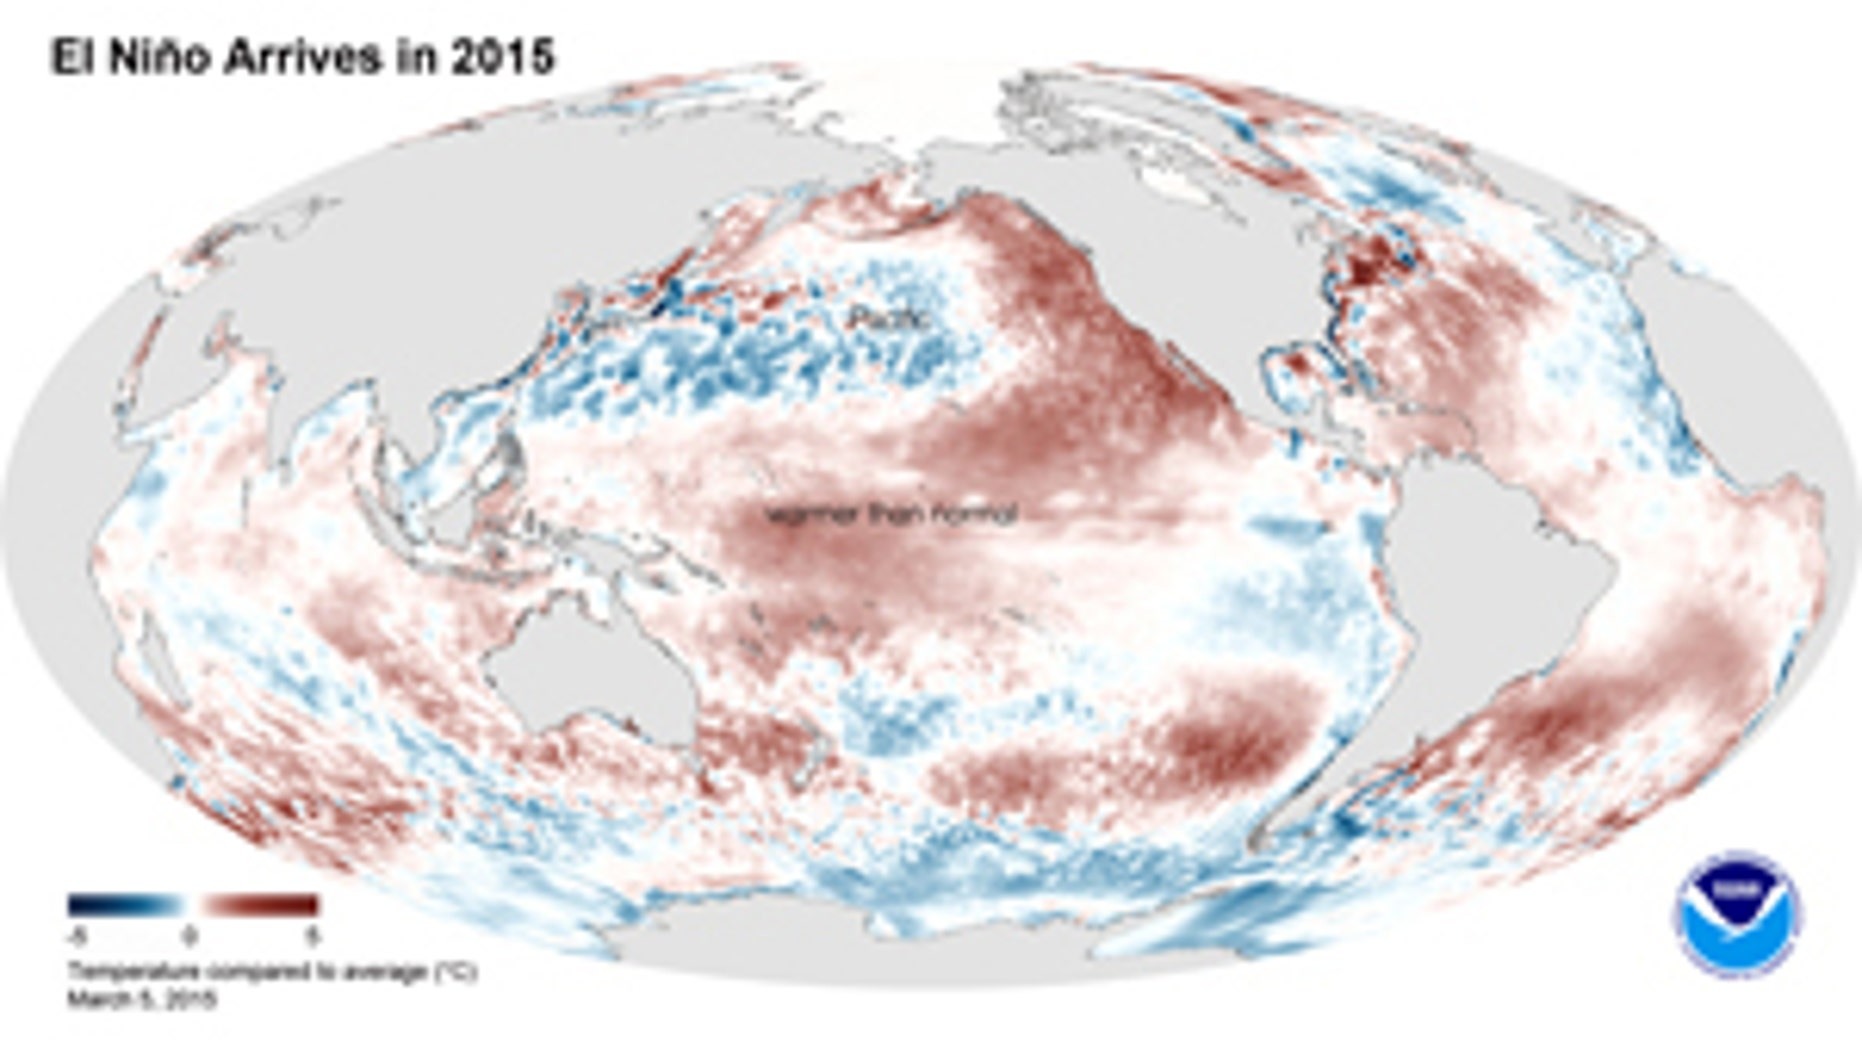 This image shows the average sea surface temperature for February 2015 as measured by NOAA satellites. The large area of red (warmer than average) can be seen extending through the equatorial Pacific.